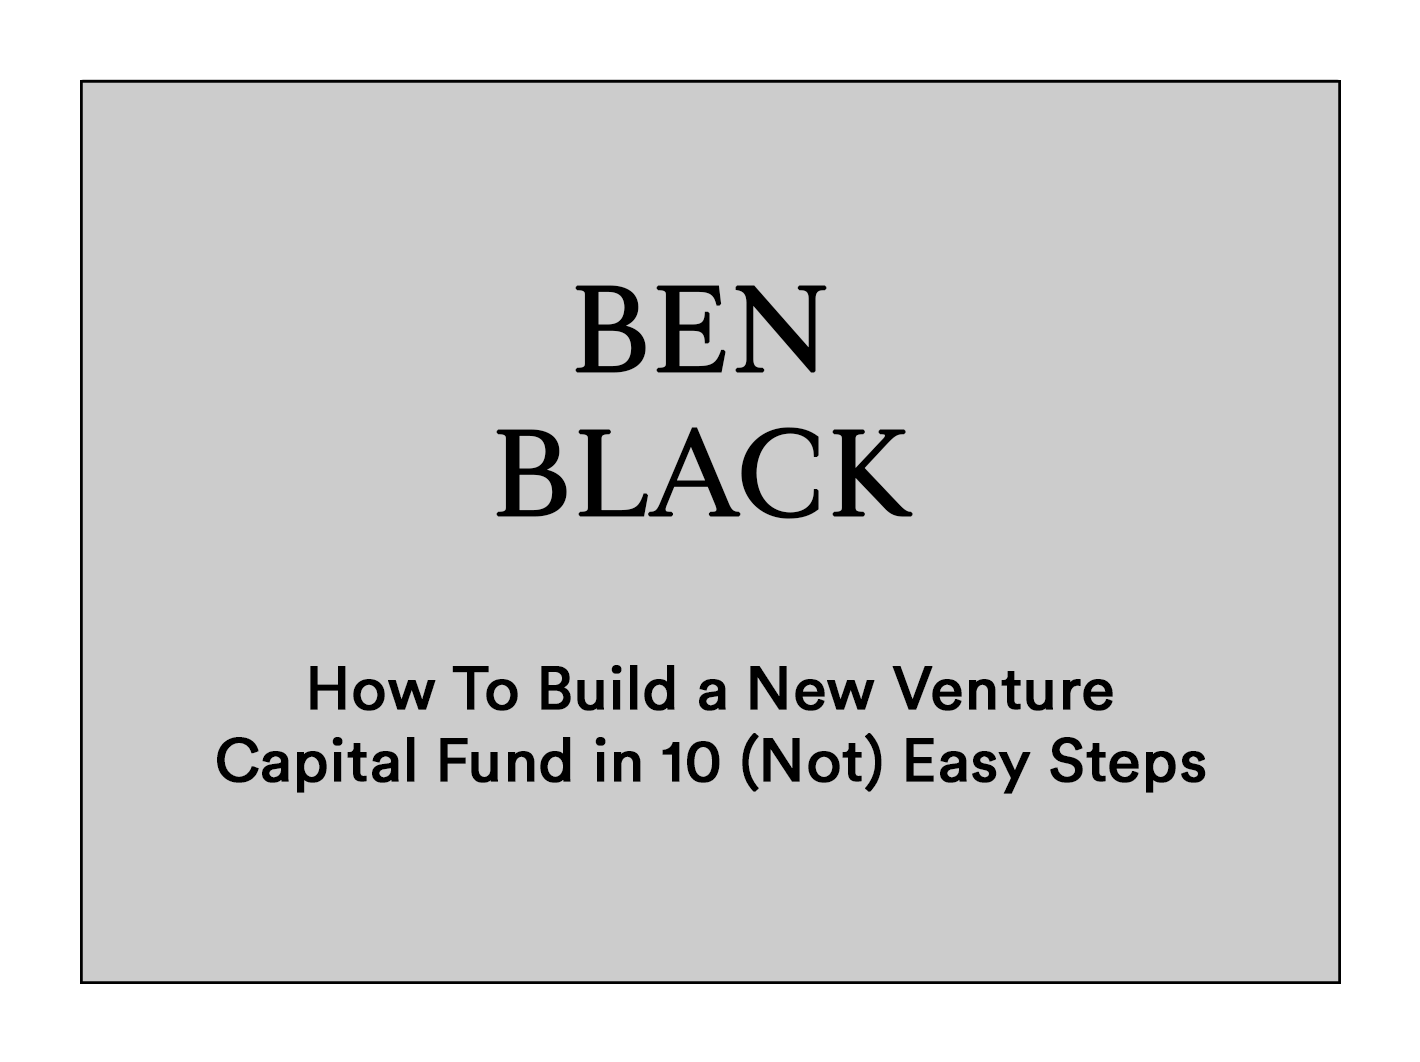 How to Build a New Venture Capital Fund in 10 (Not) Easy Steps